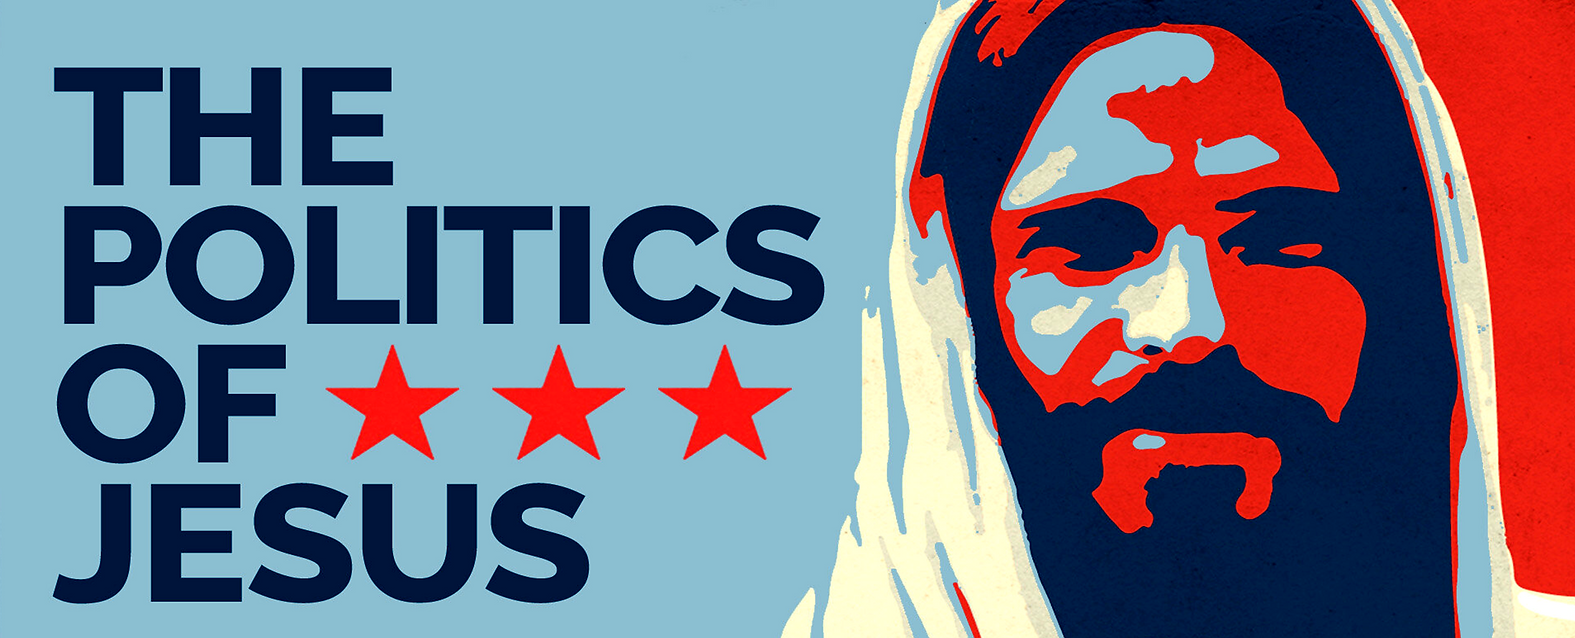 THE POLITICS OF JESUS Web Banner.png